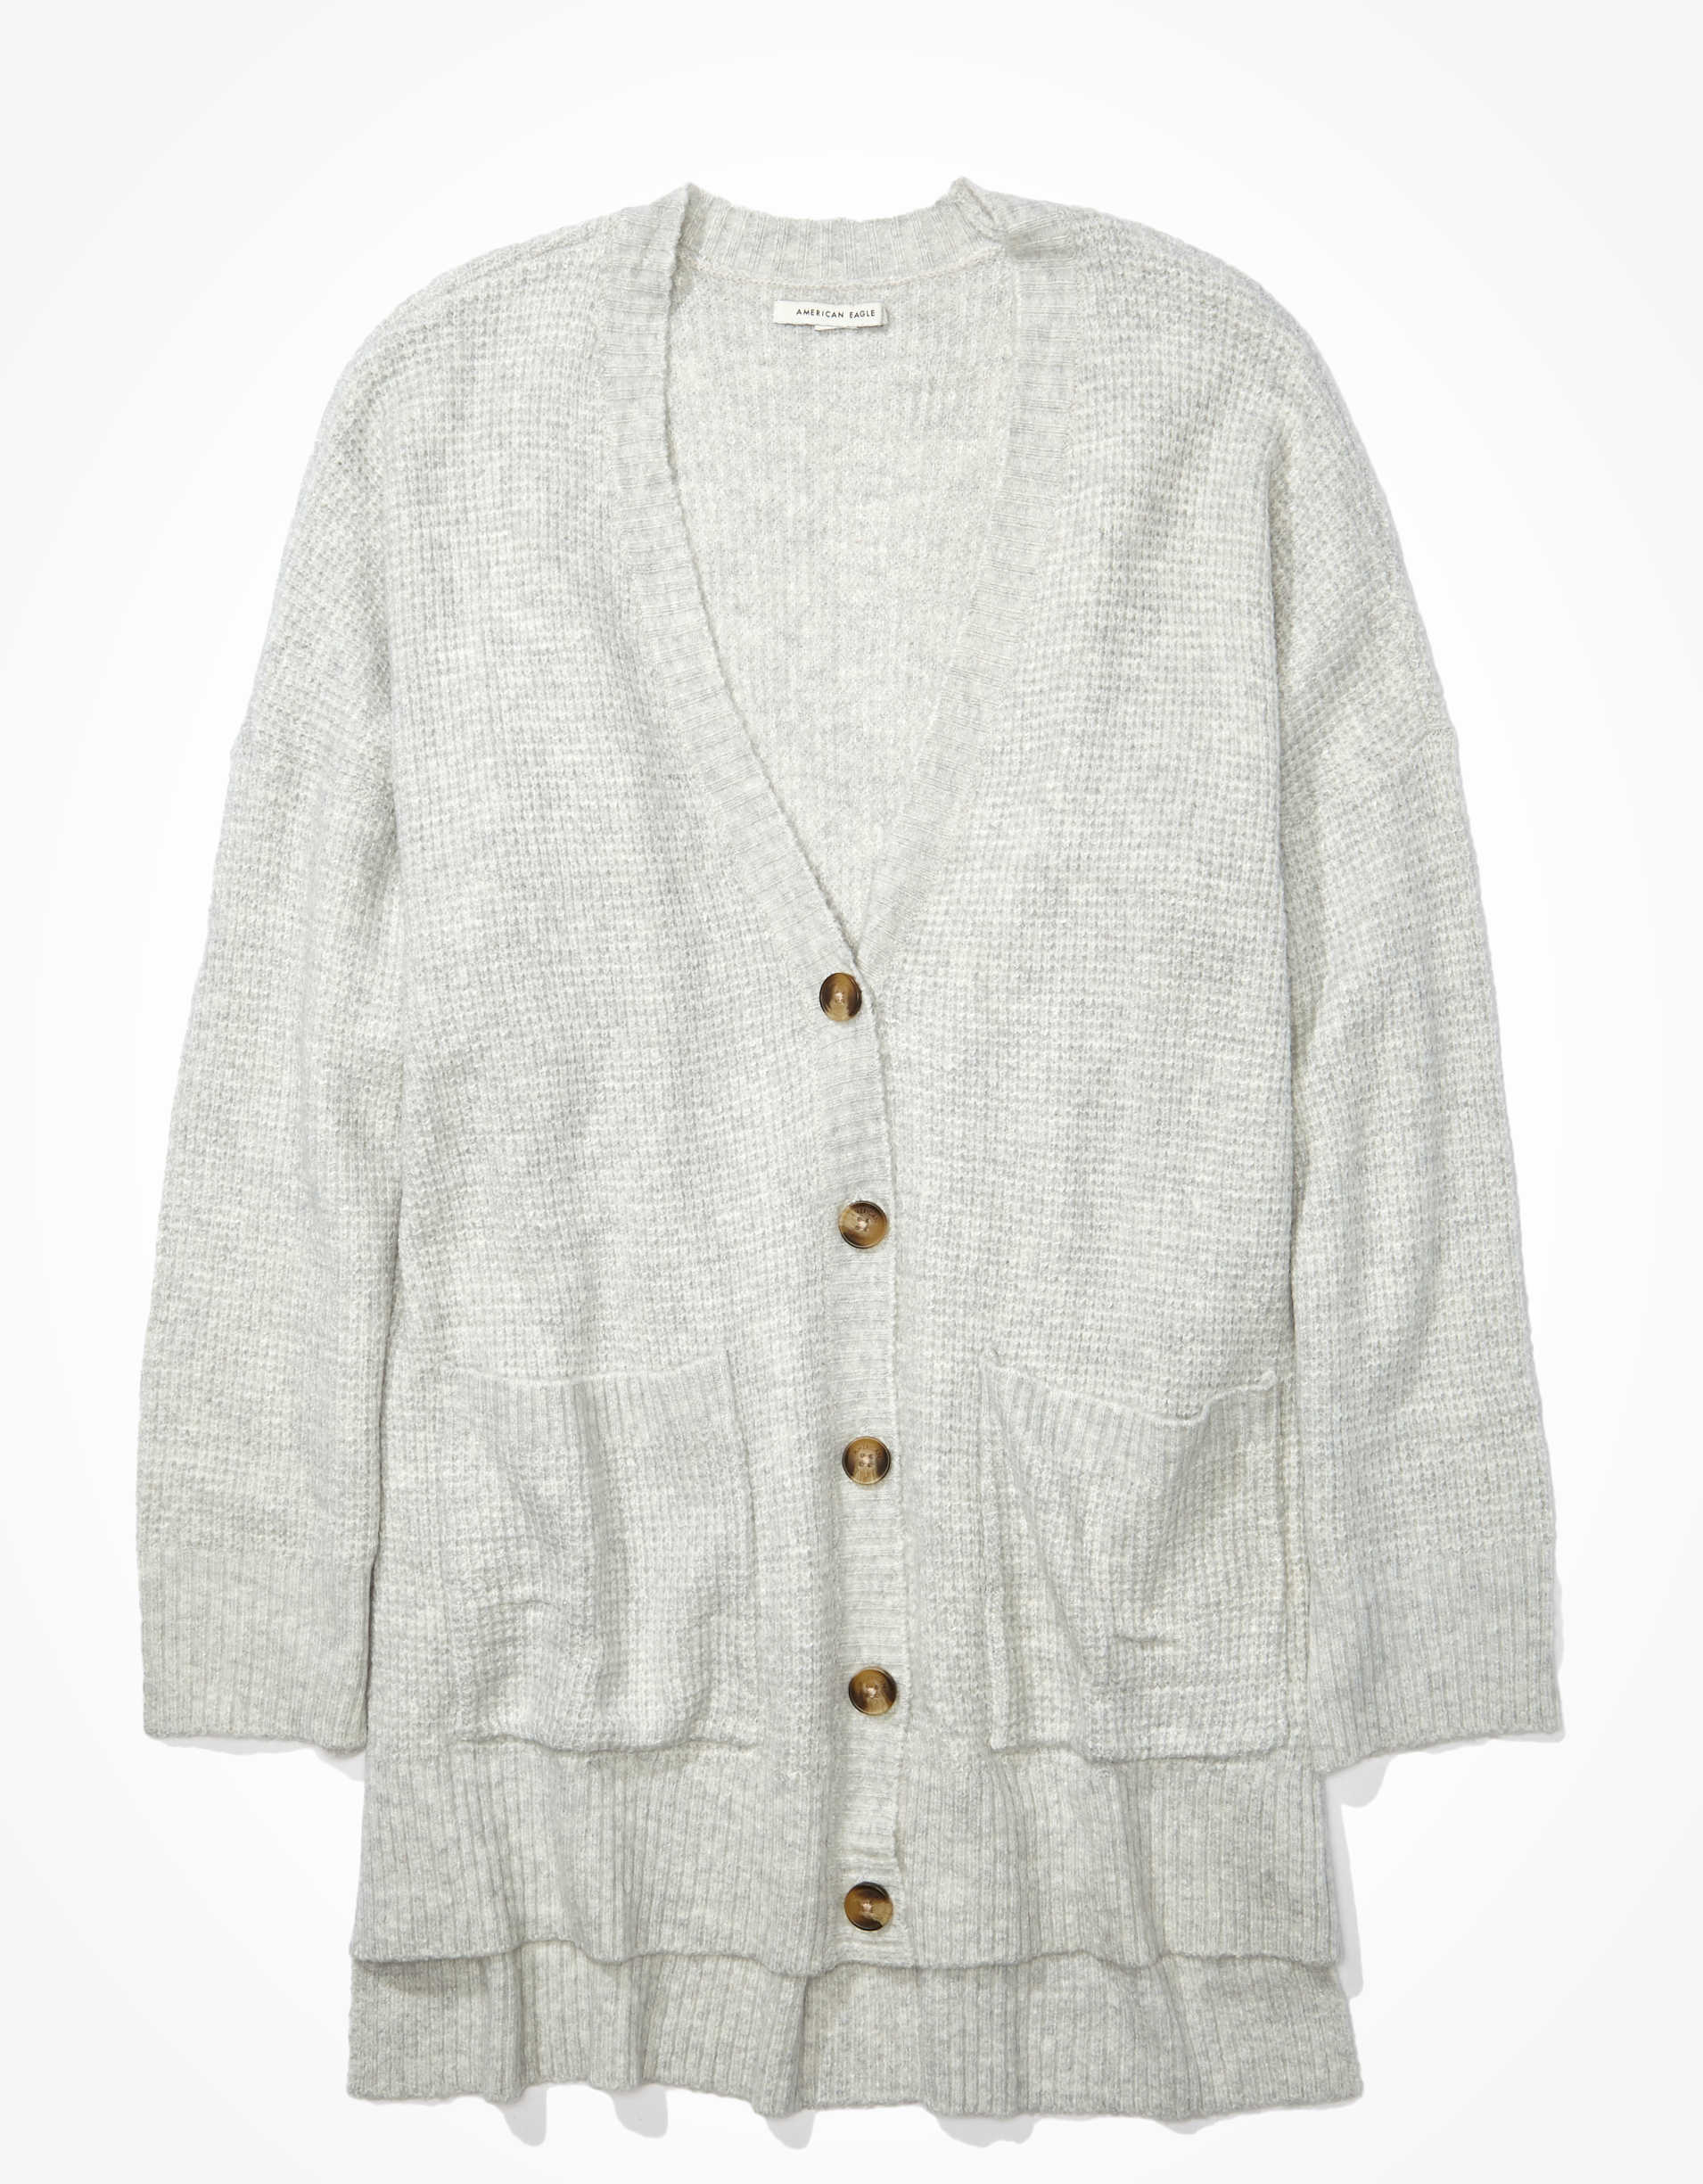 AE Oversized Dreamspun Button Up Cardigan